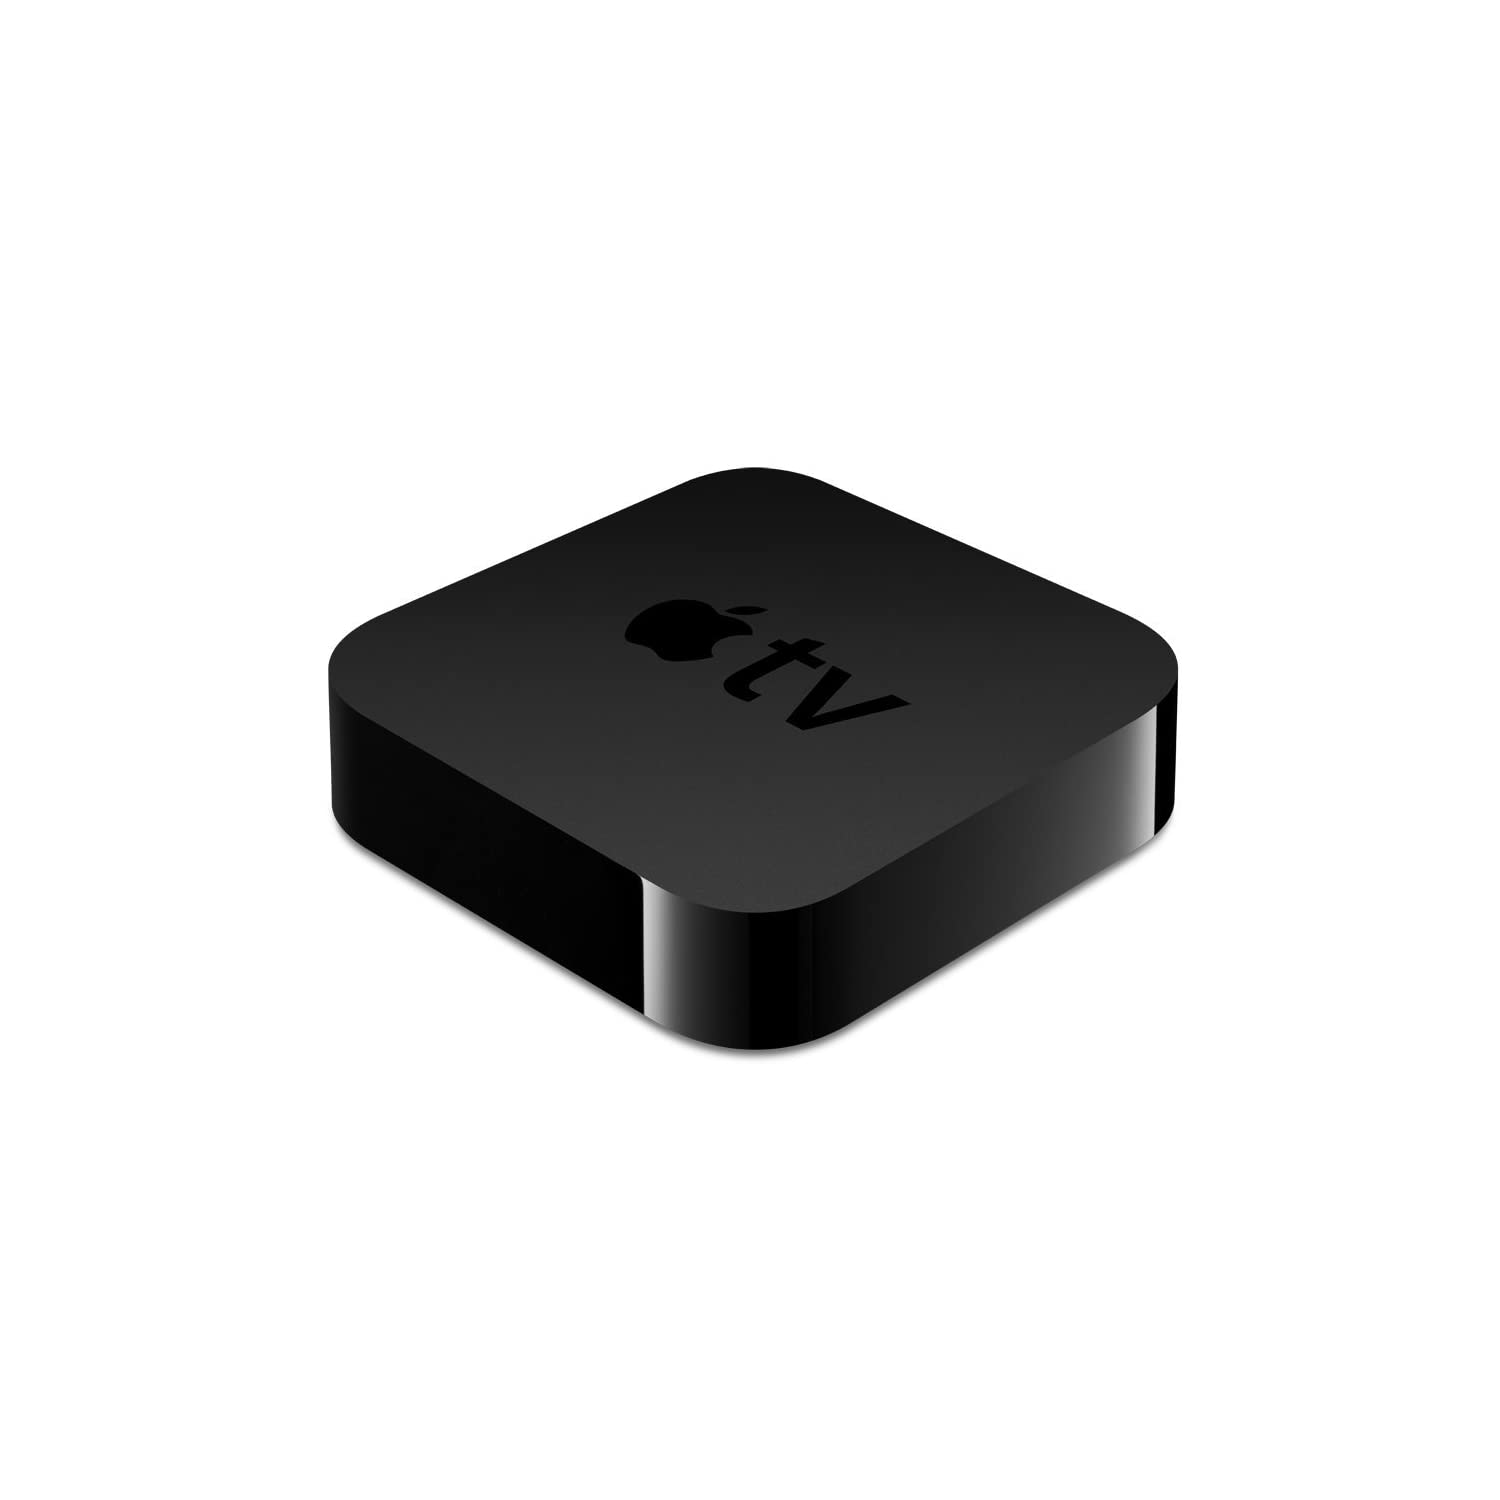 New Apple TV (Latest Model - Launched Mar 2012)